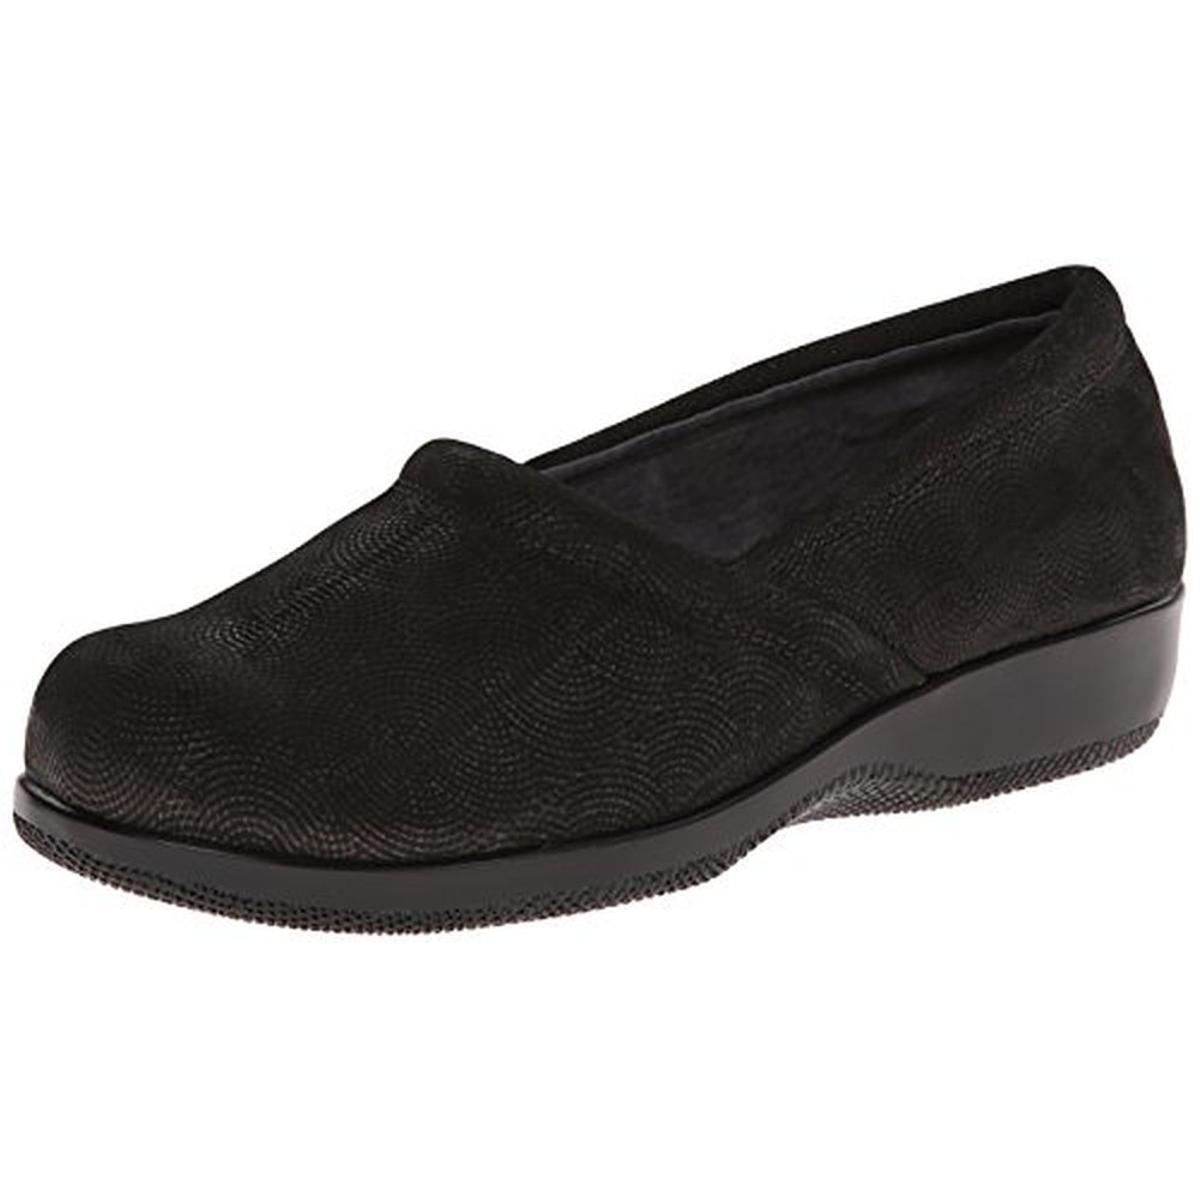 SoftWalk Womens Adora Leather Textured Loafers by SoftWalk